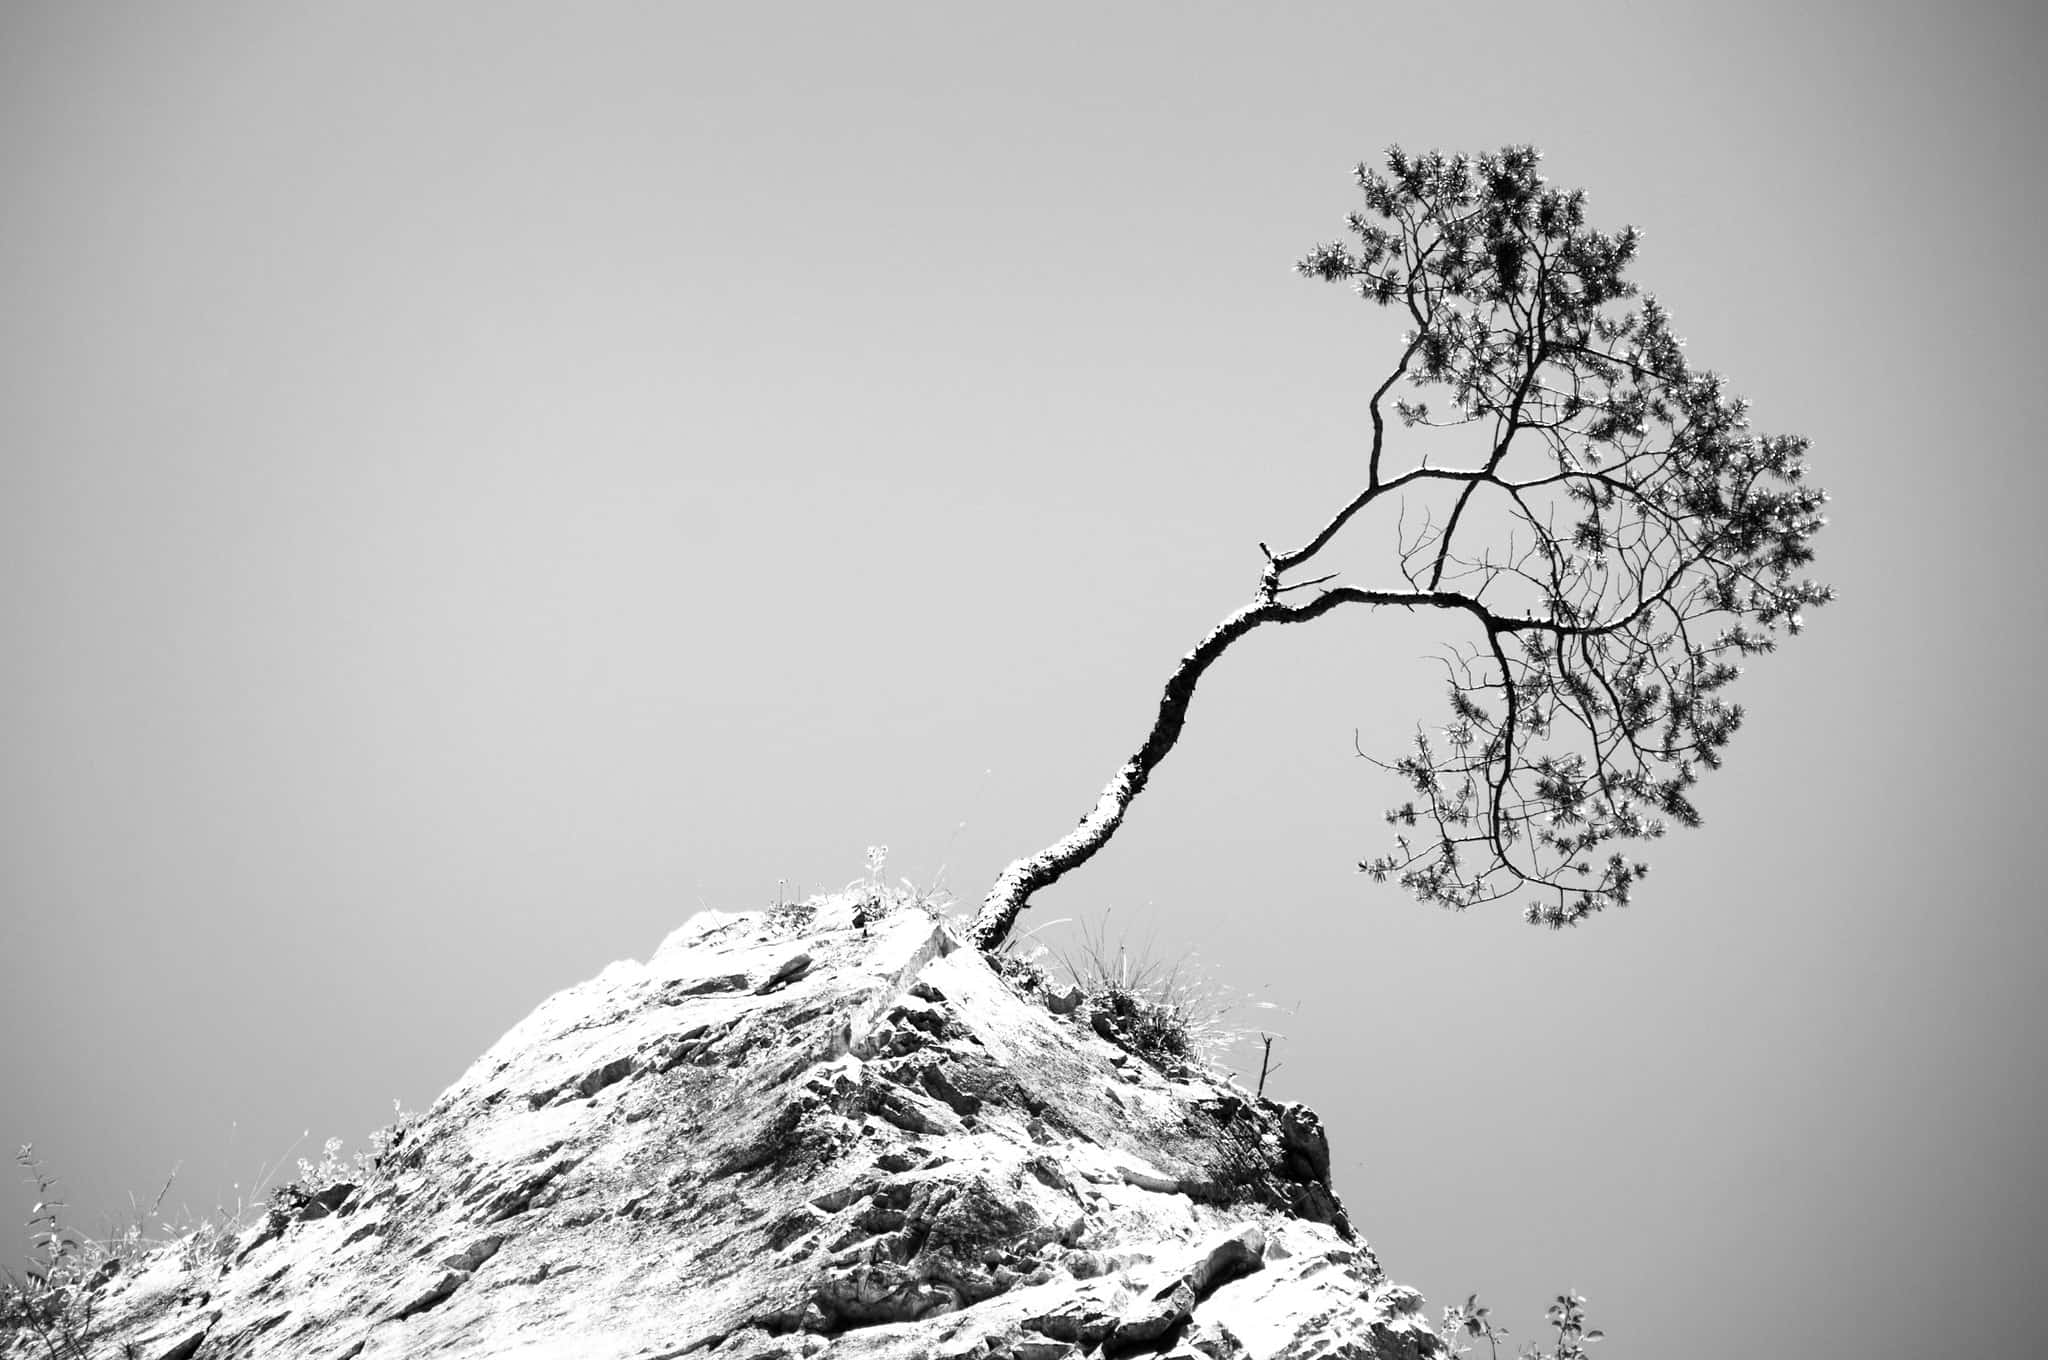 Tree growing out of a rock.